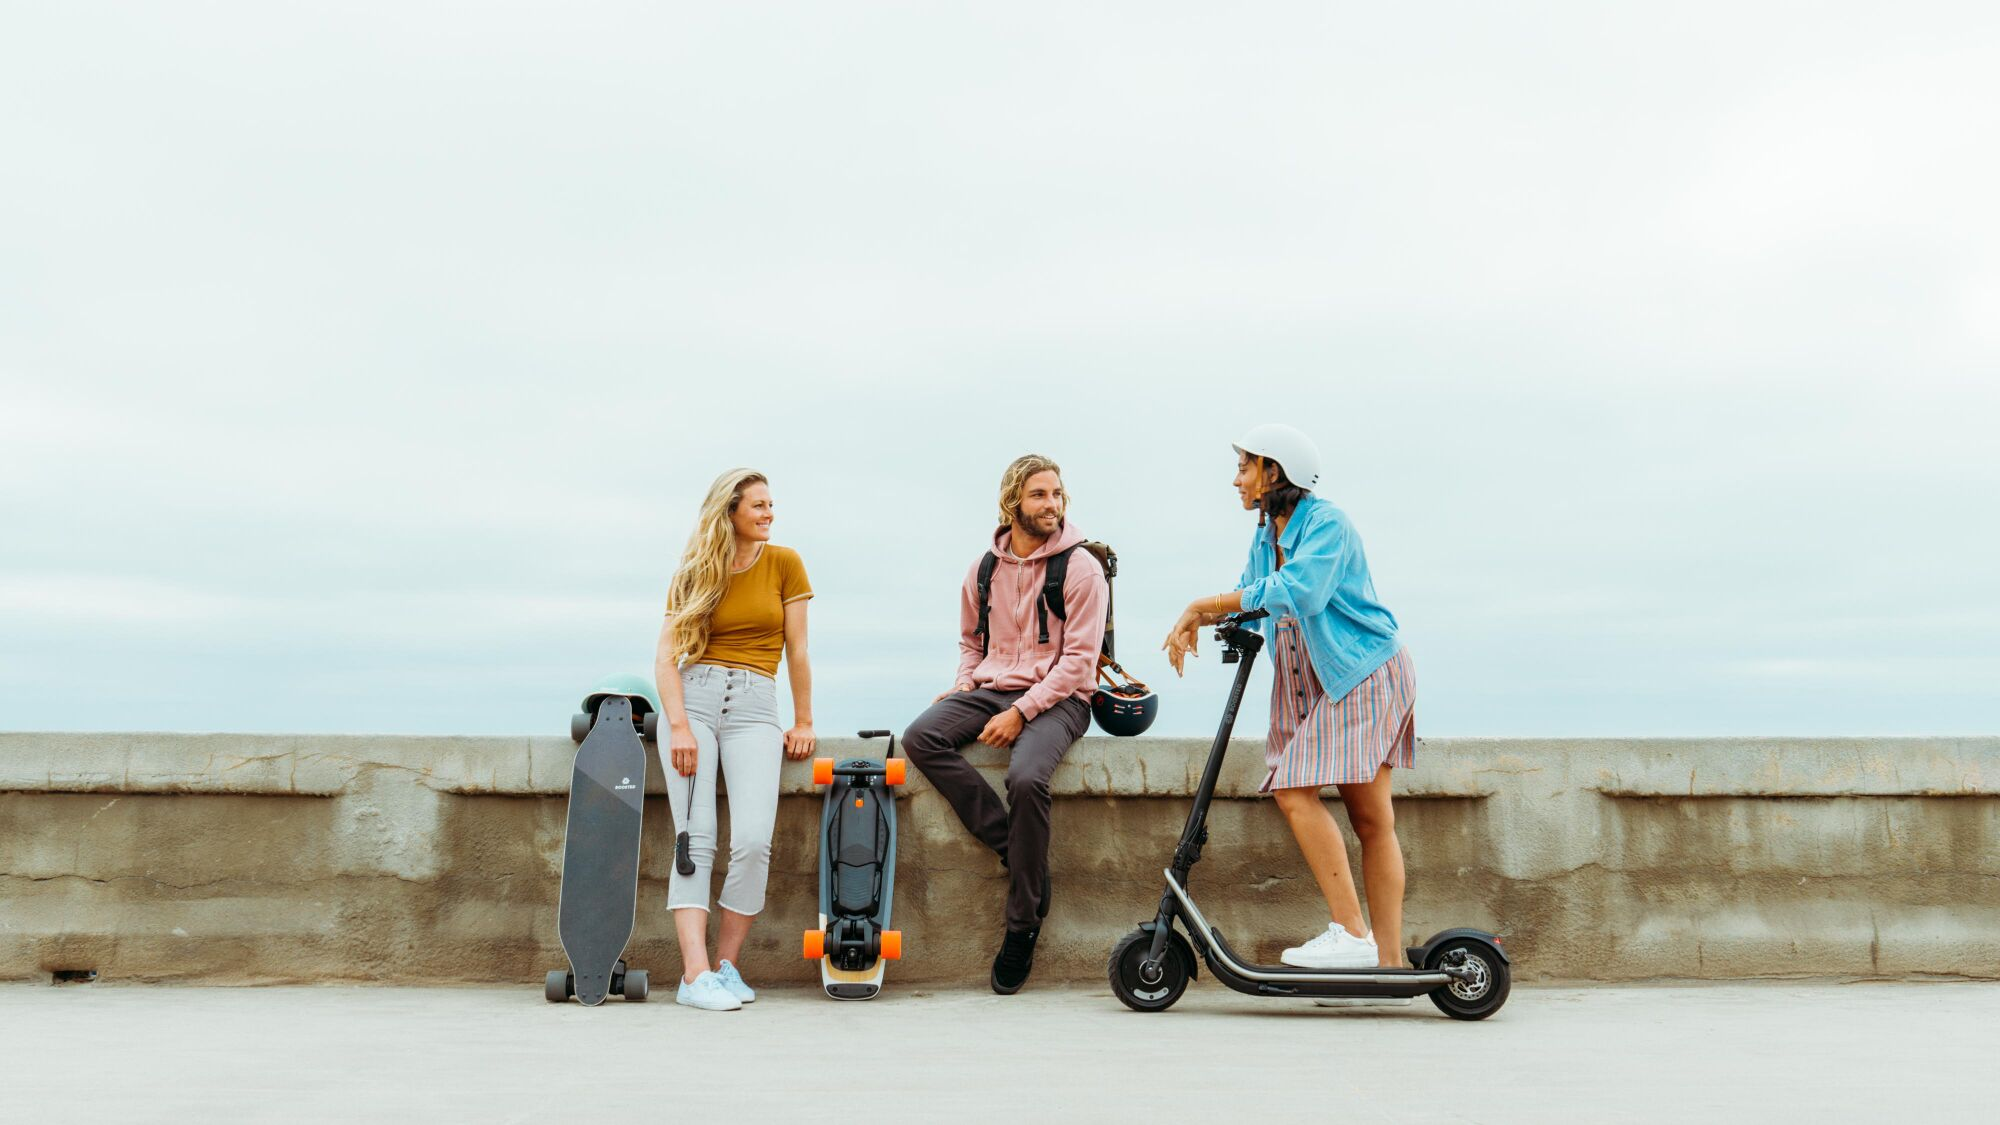 Boosted's rugged electric scooter is launching at ,599